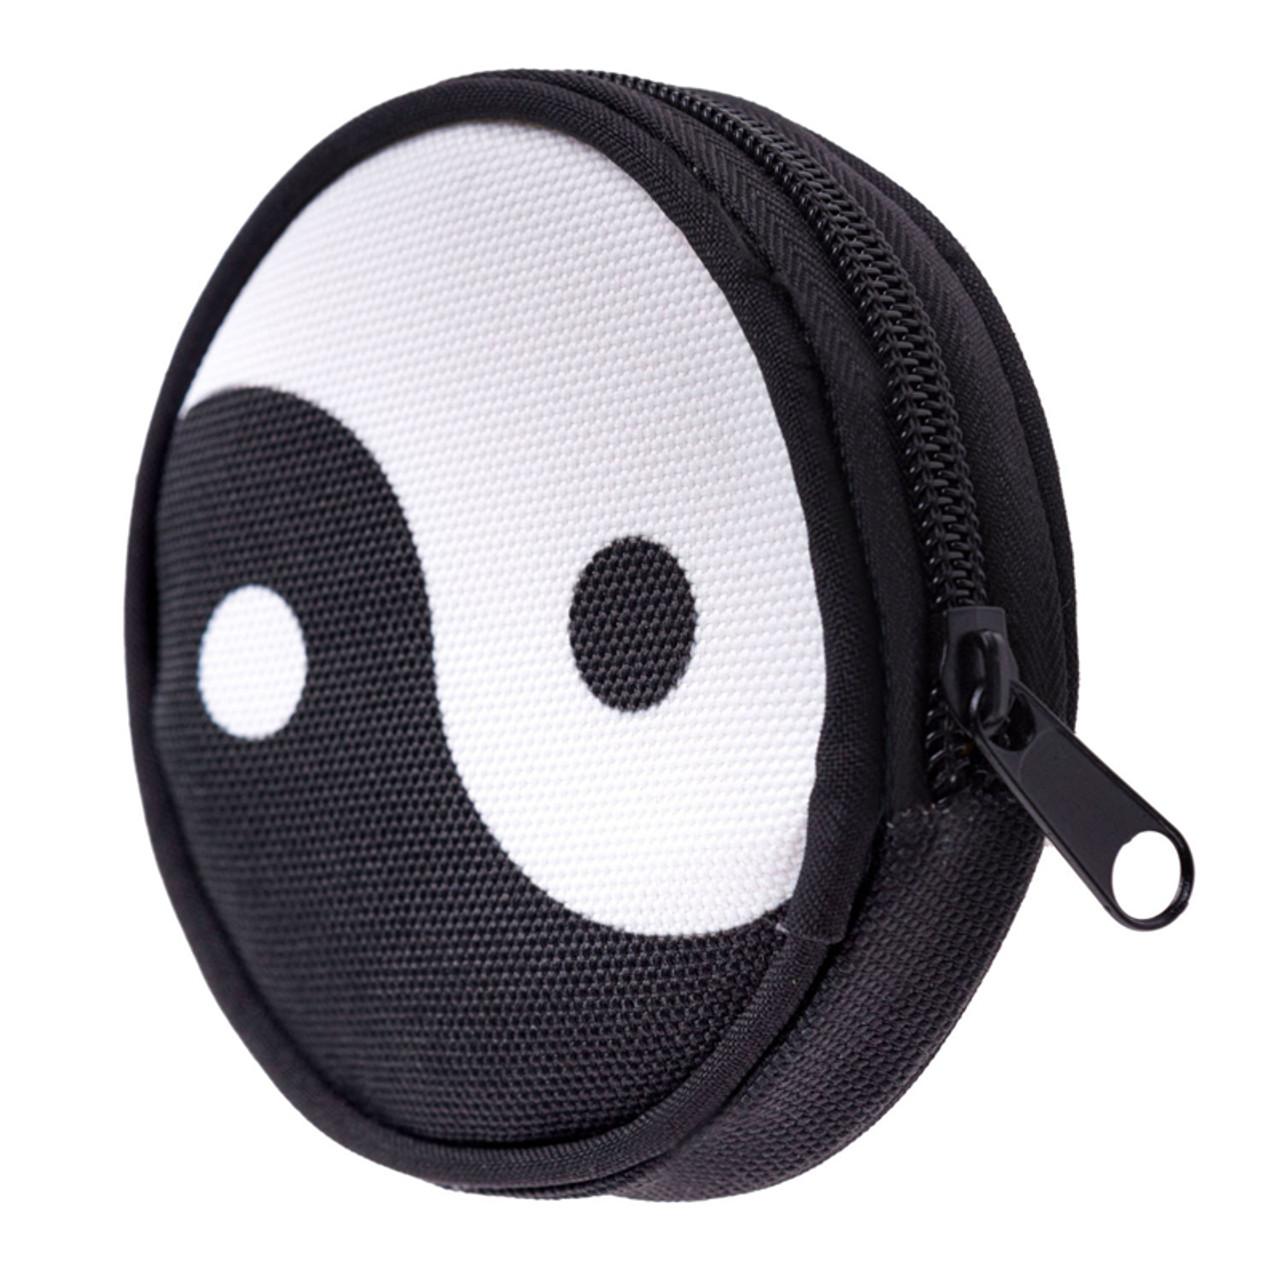 45 degree view of Yin Yang Round Graphic Print Coin Purse - 18 Styles